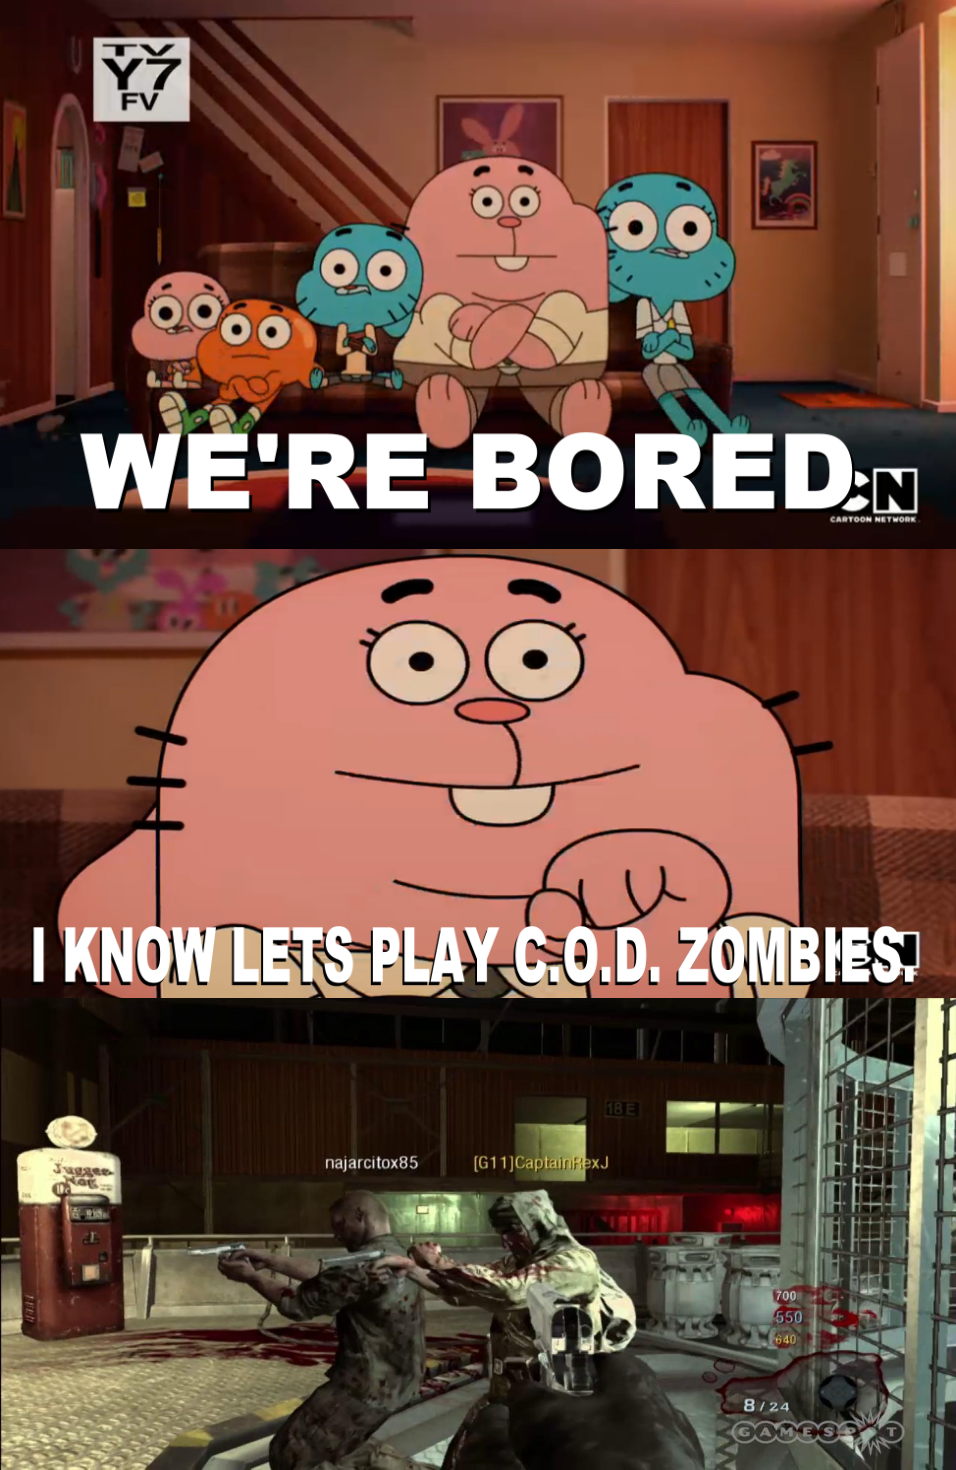 the_wattersons_plays_call_of_duty_zombies_meme_by_josael281999 d8pb6xo the wattersons plays call of duty zombies meme by josael281999 on